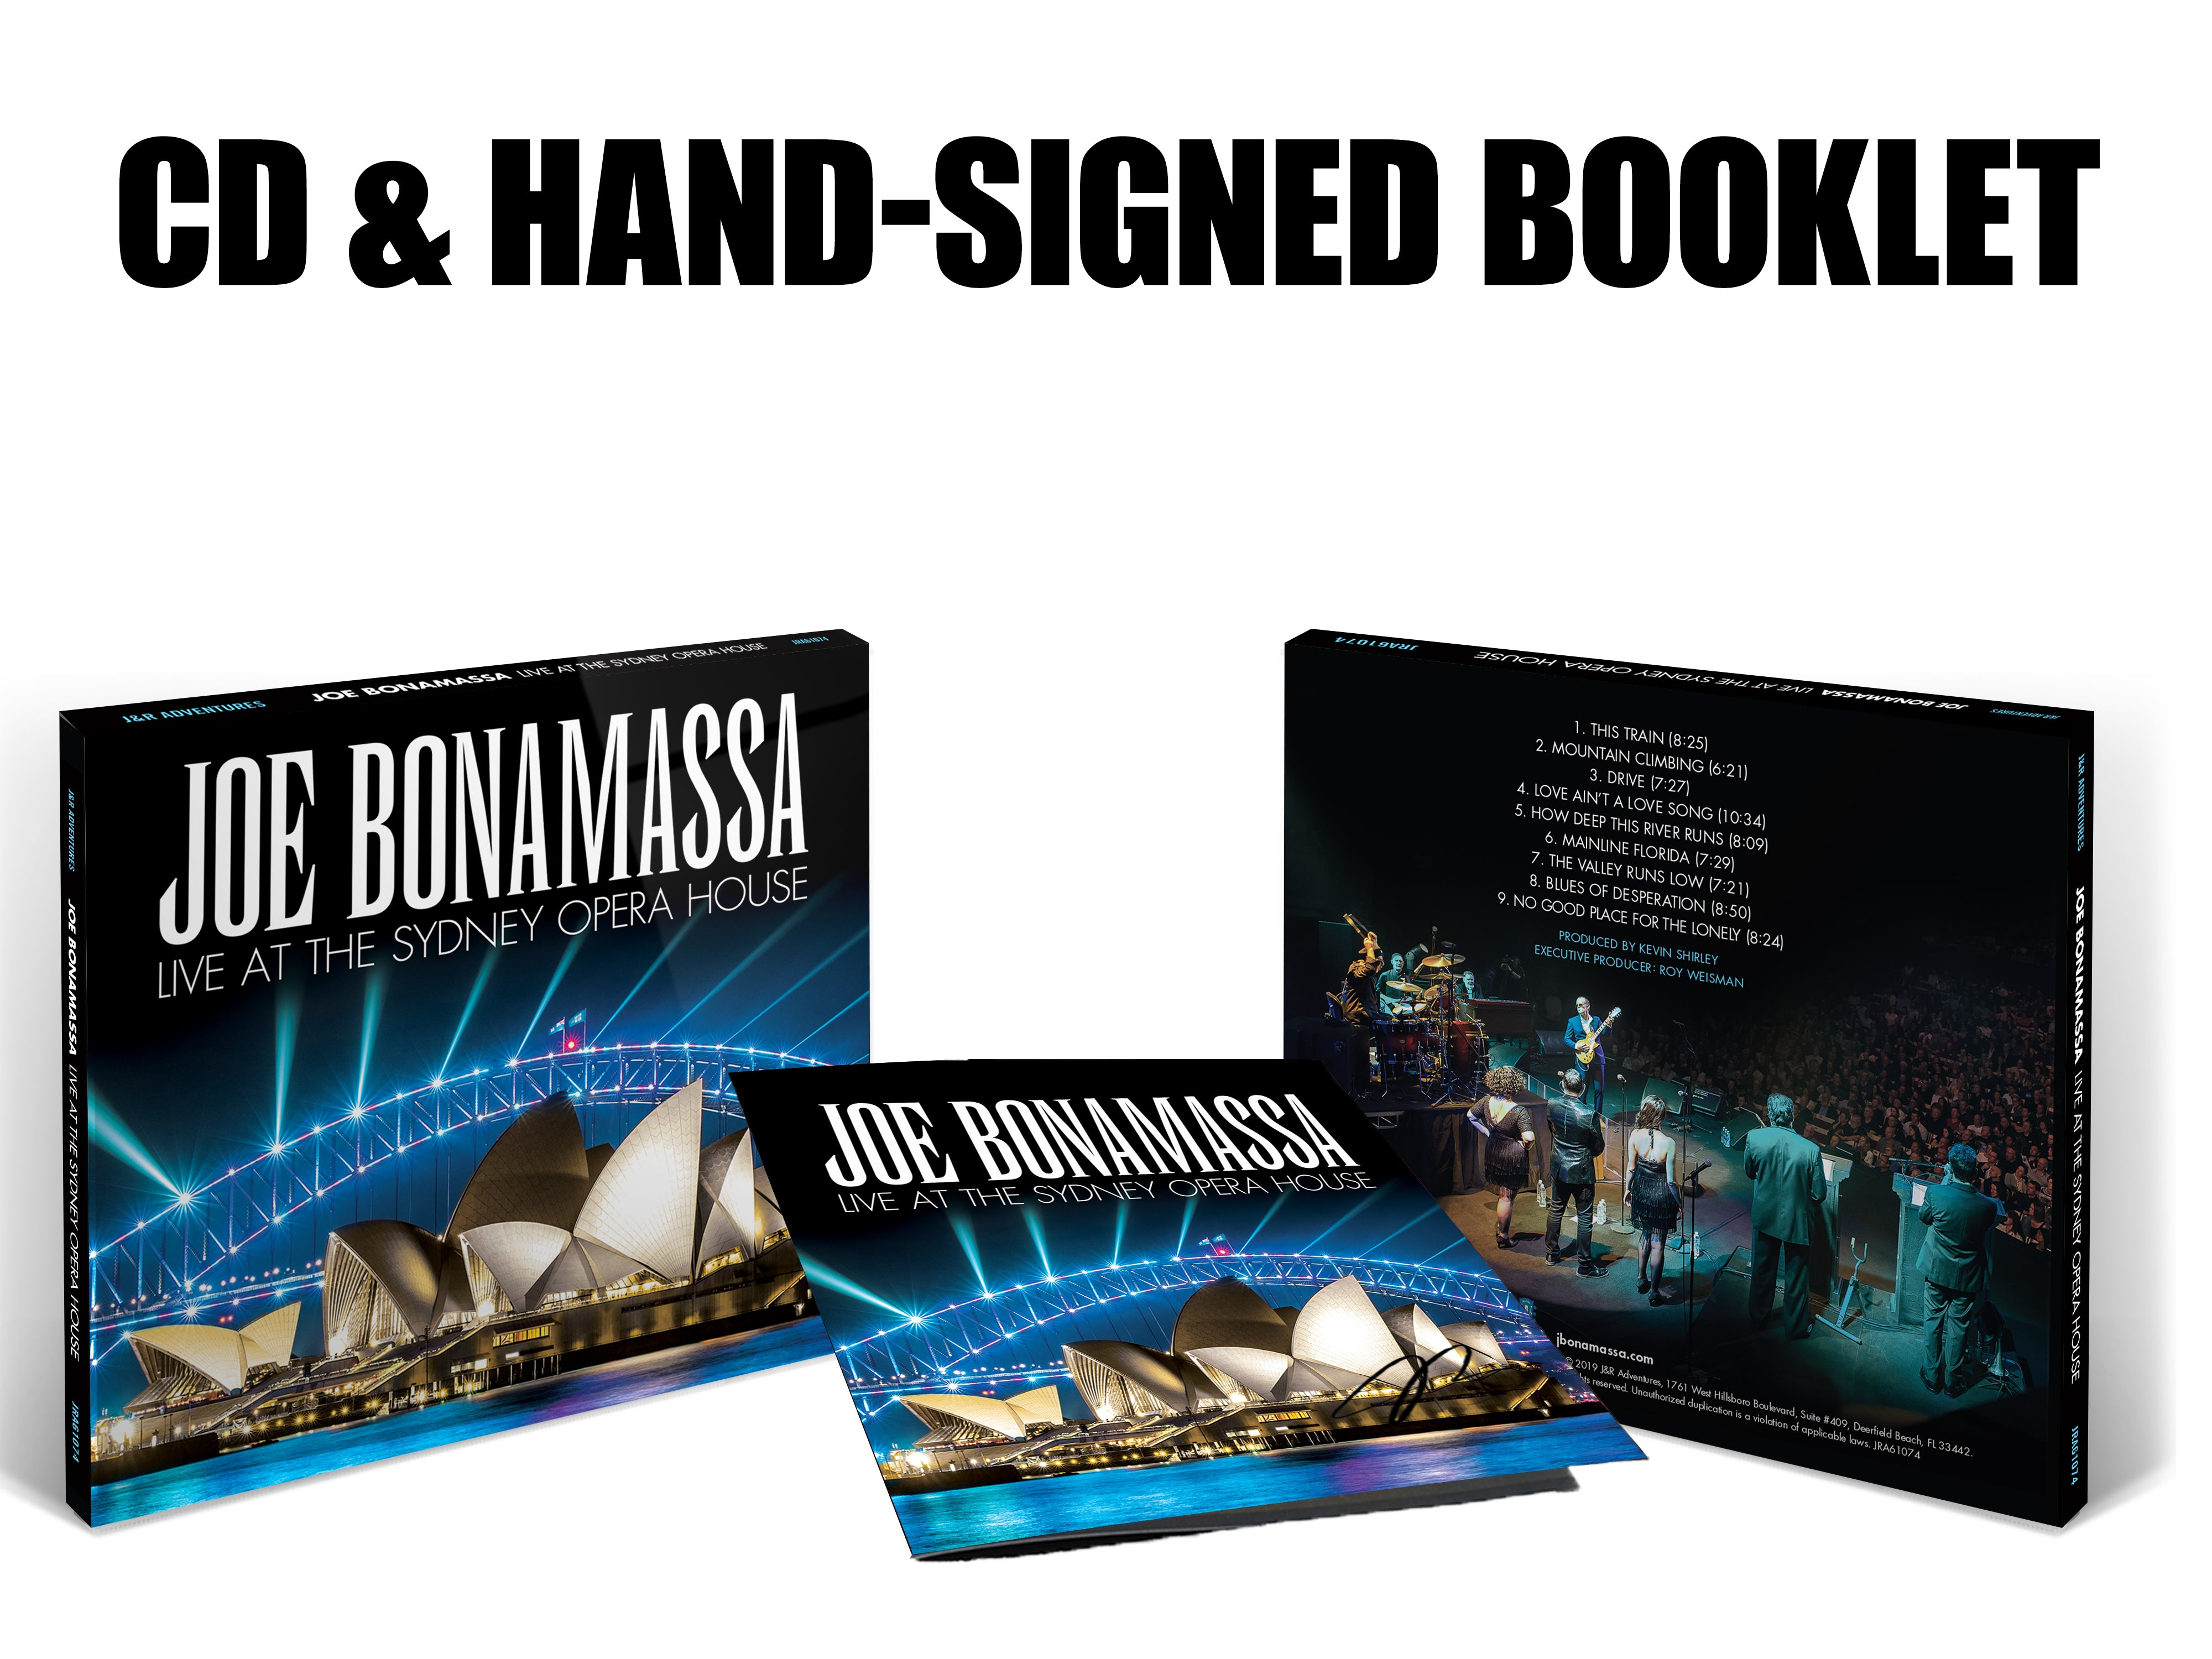 Joe Bonamassa: Live at the Sydney Opera House (CD) (Released: 2019) - Hand-Signed